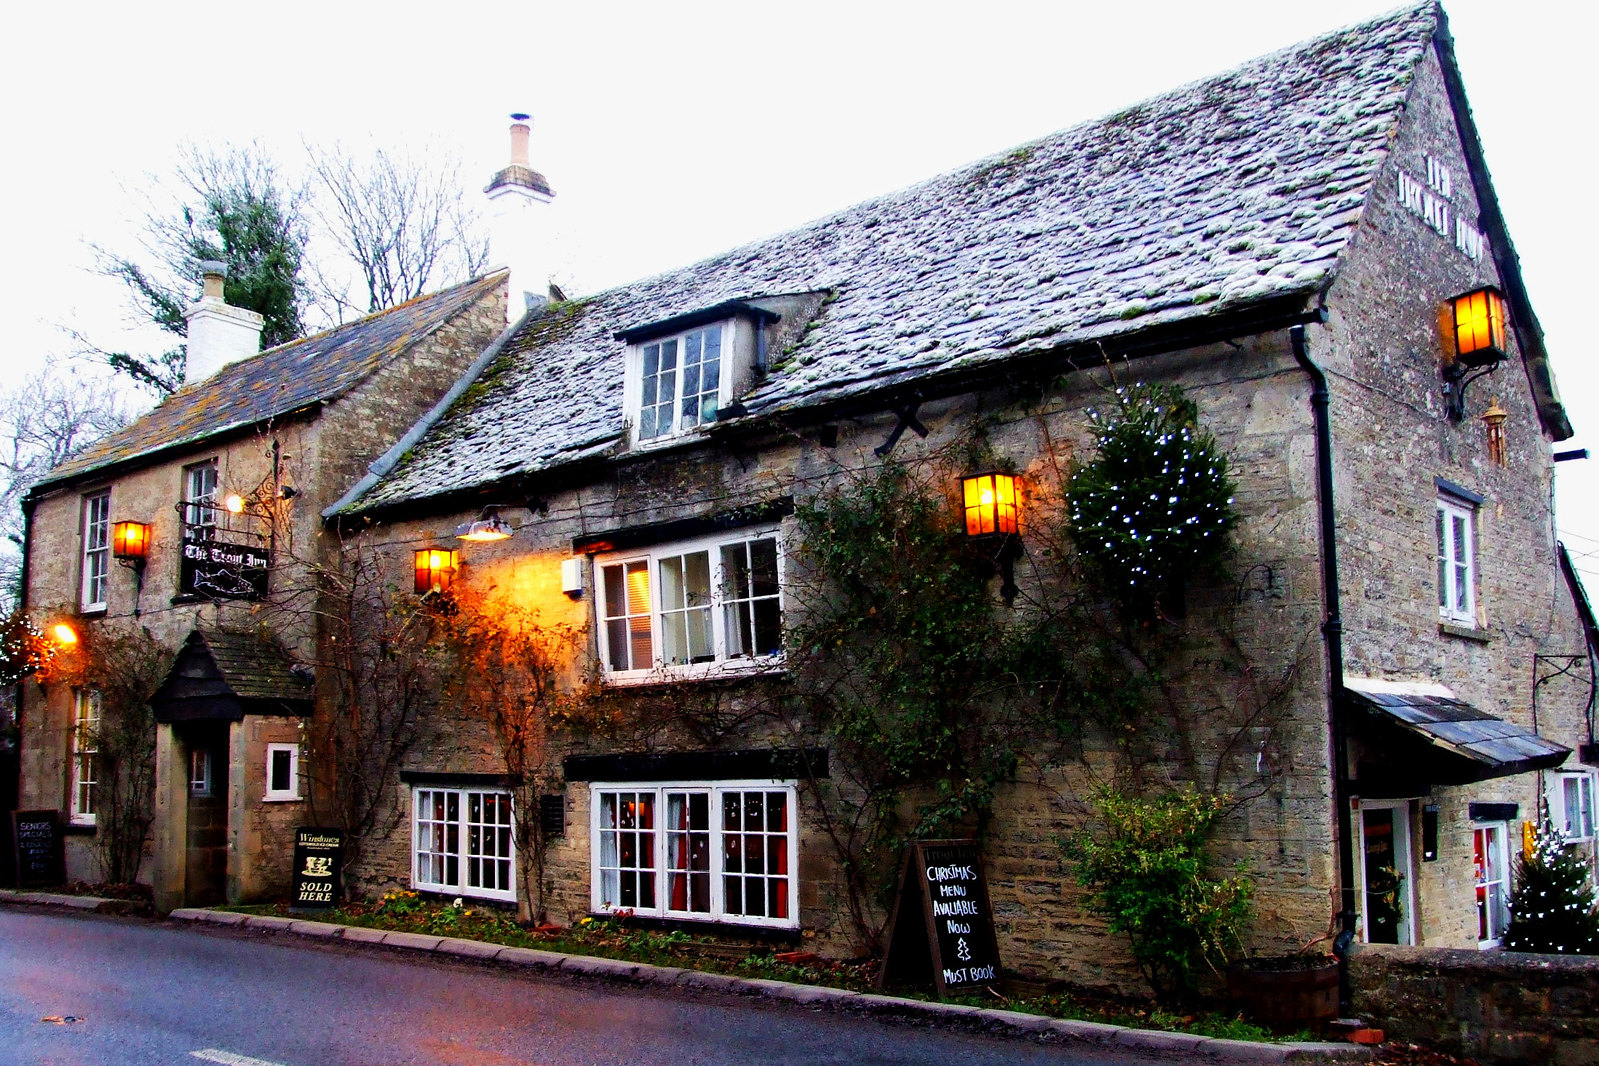 The Trout Inn on the River Thames at Lechlade, Cotswolds, England